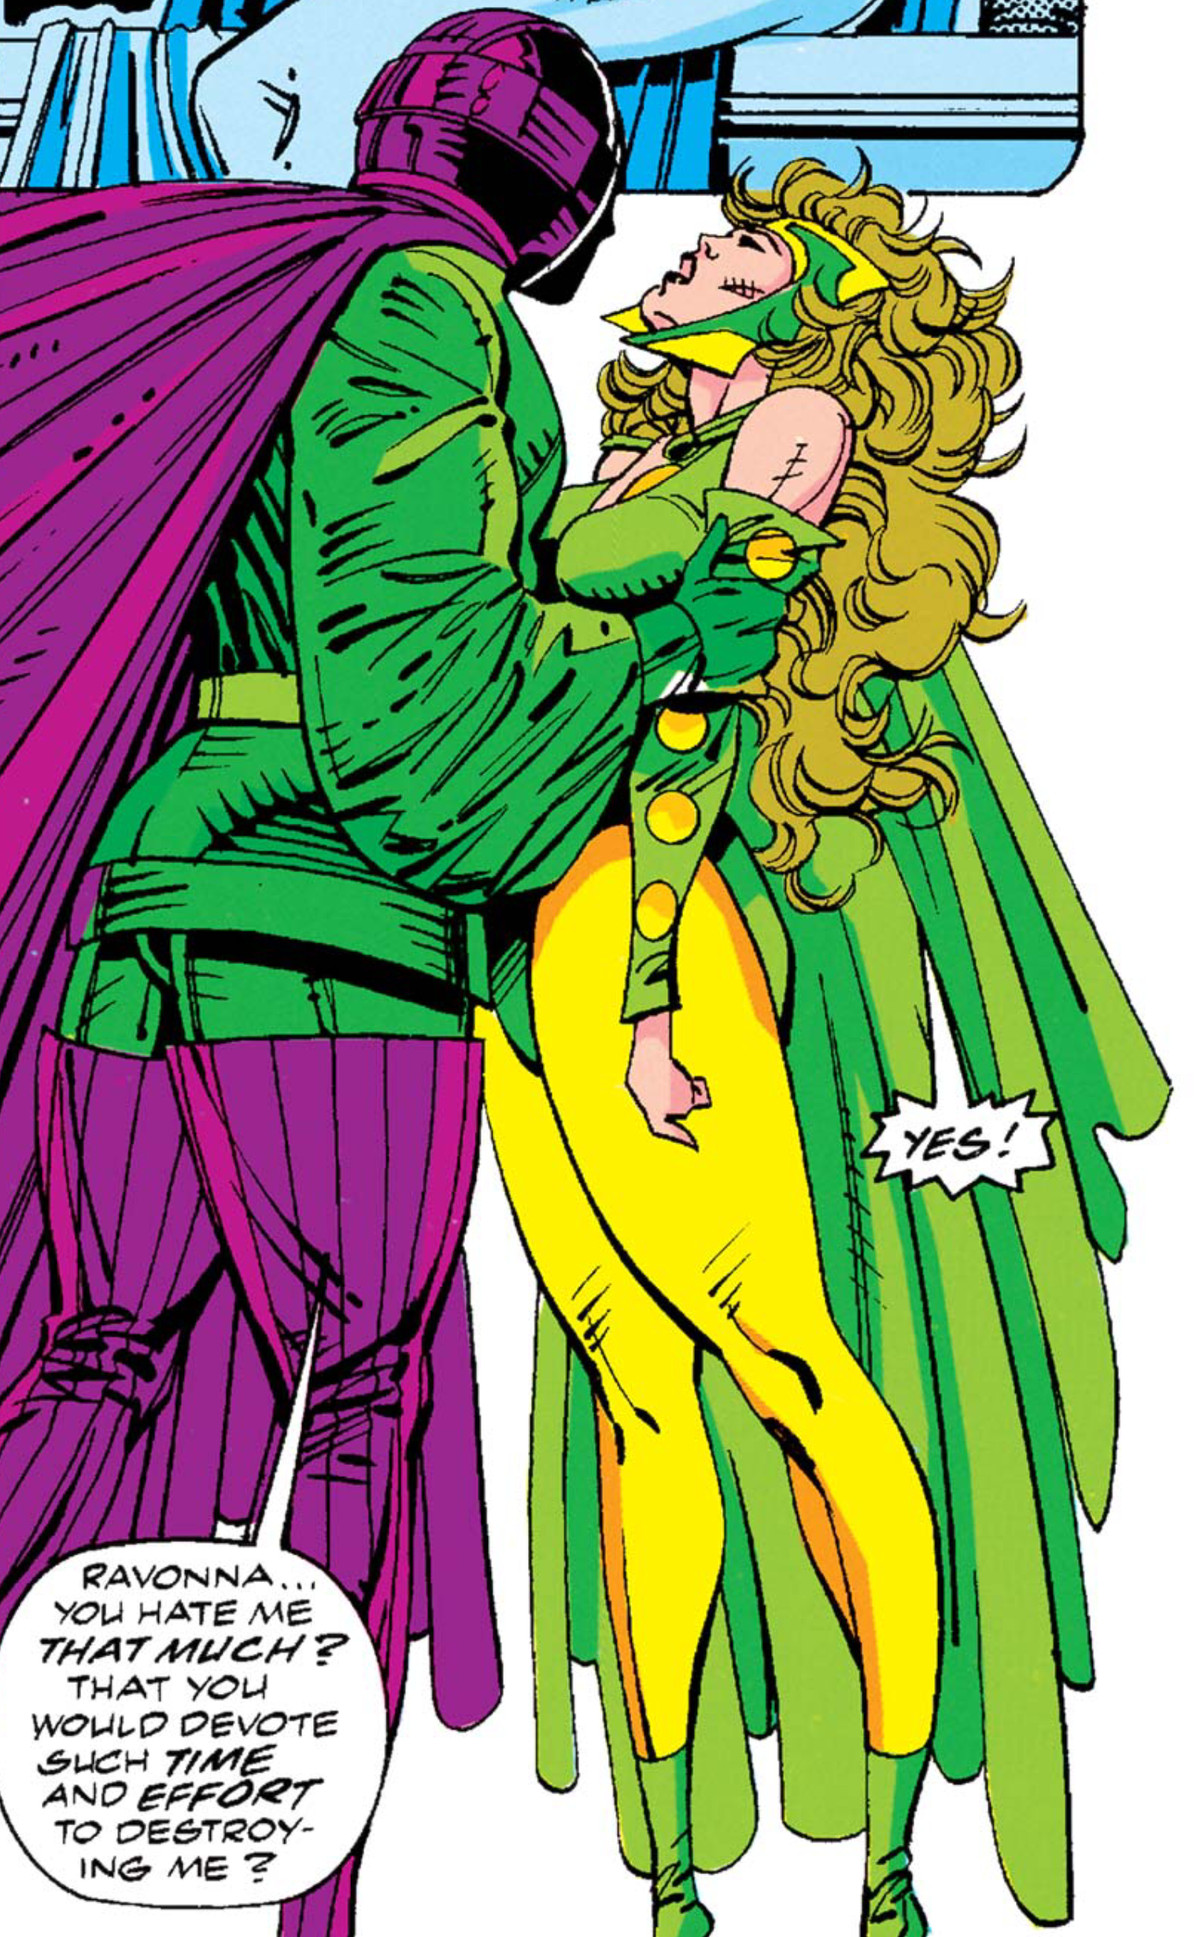 """""""Ravonna,"""" Kang says as he grips Ravonna Renslayer by the arms, """"You hate me that much? That you would devote such time and effort to destroying me?"""" """"Yes!"""" she cries, in Avengers Annual #21 (1992)."""